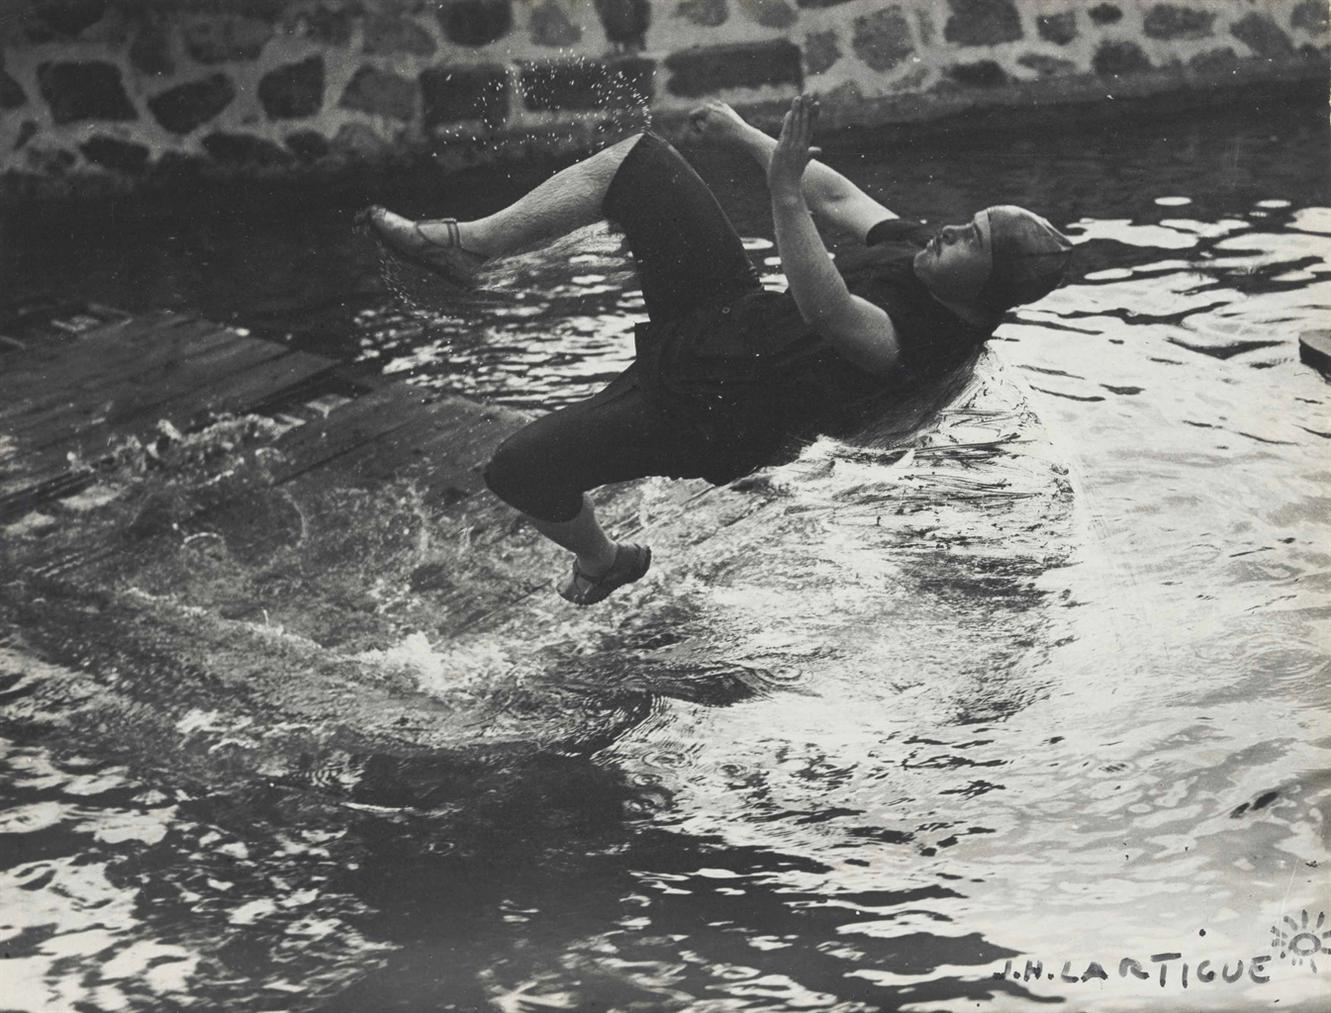 Jacques Henri Lartigue-Swimming Pool At Chateau De Rouzat, My Cousin Jean Haguet-1910